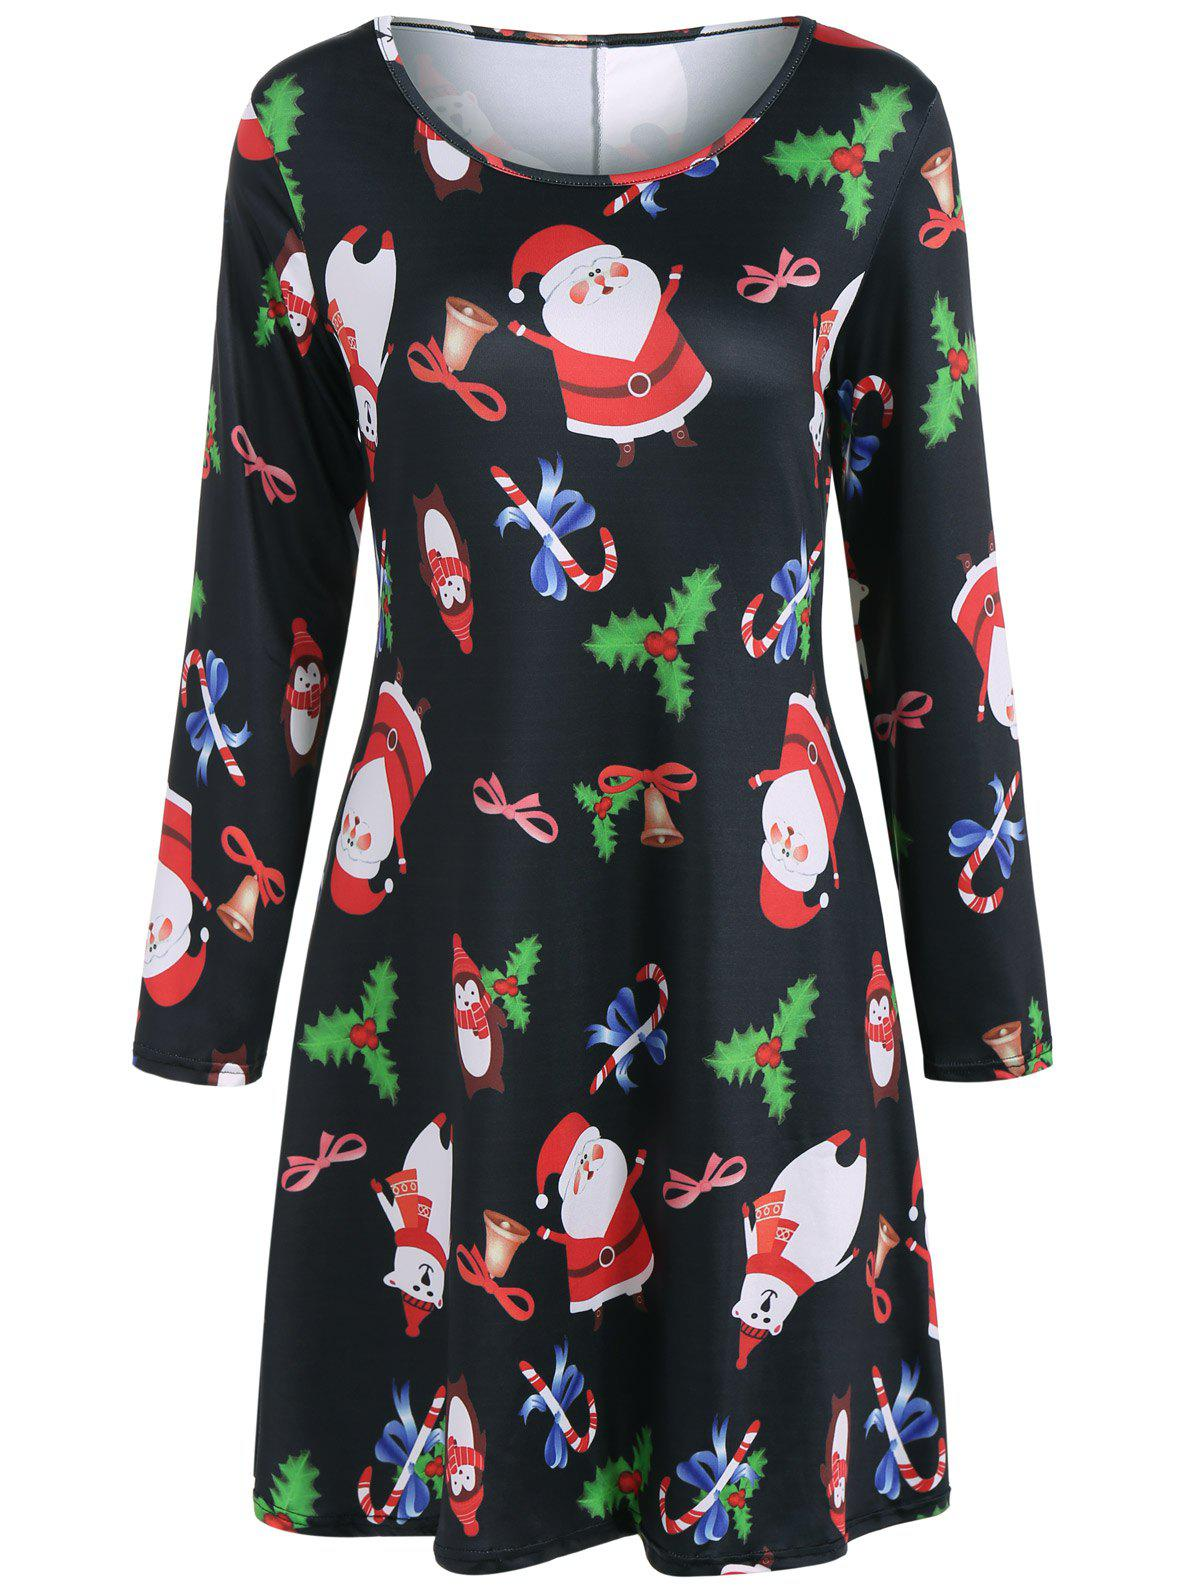 Christmas Santa Claus Print DressWOMEN<br><br>Size: XL; Color: BLACK; Style: Casual; Material: Polyester; Silhouette: A-Line; Dresses Length: Mini; Neckline: Scoop Neck; Sleeve Length: Long Sleeves; Pattern Type: Character; With Belt: No; Season: Fall,Spring; Weight: 0.350kg; Package Contents: 1 x Dress;